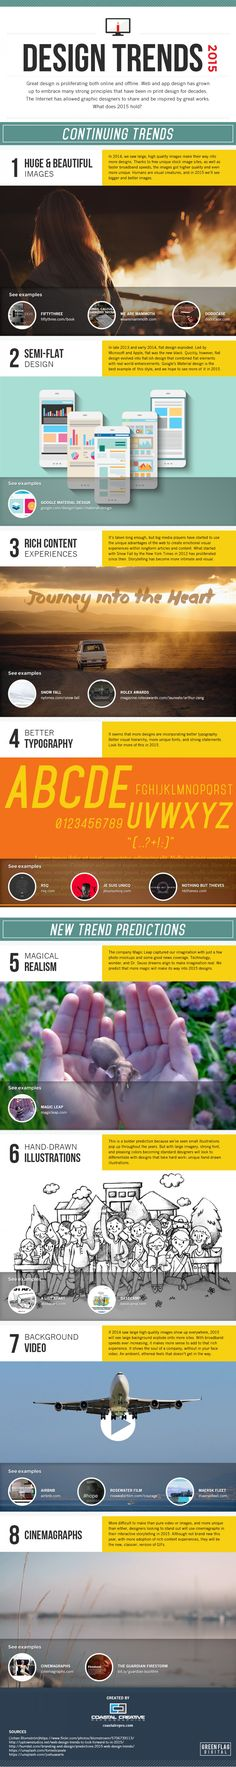 Design Trends 2015 #Infographic